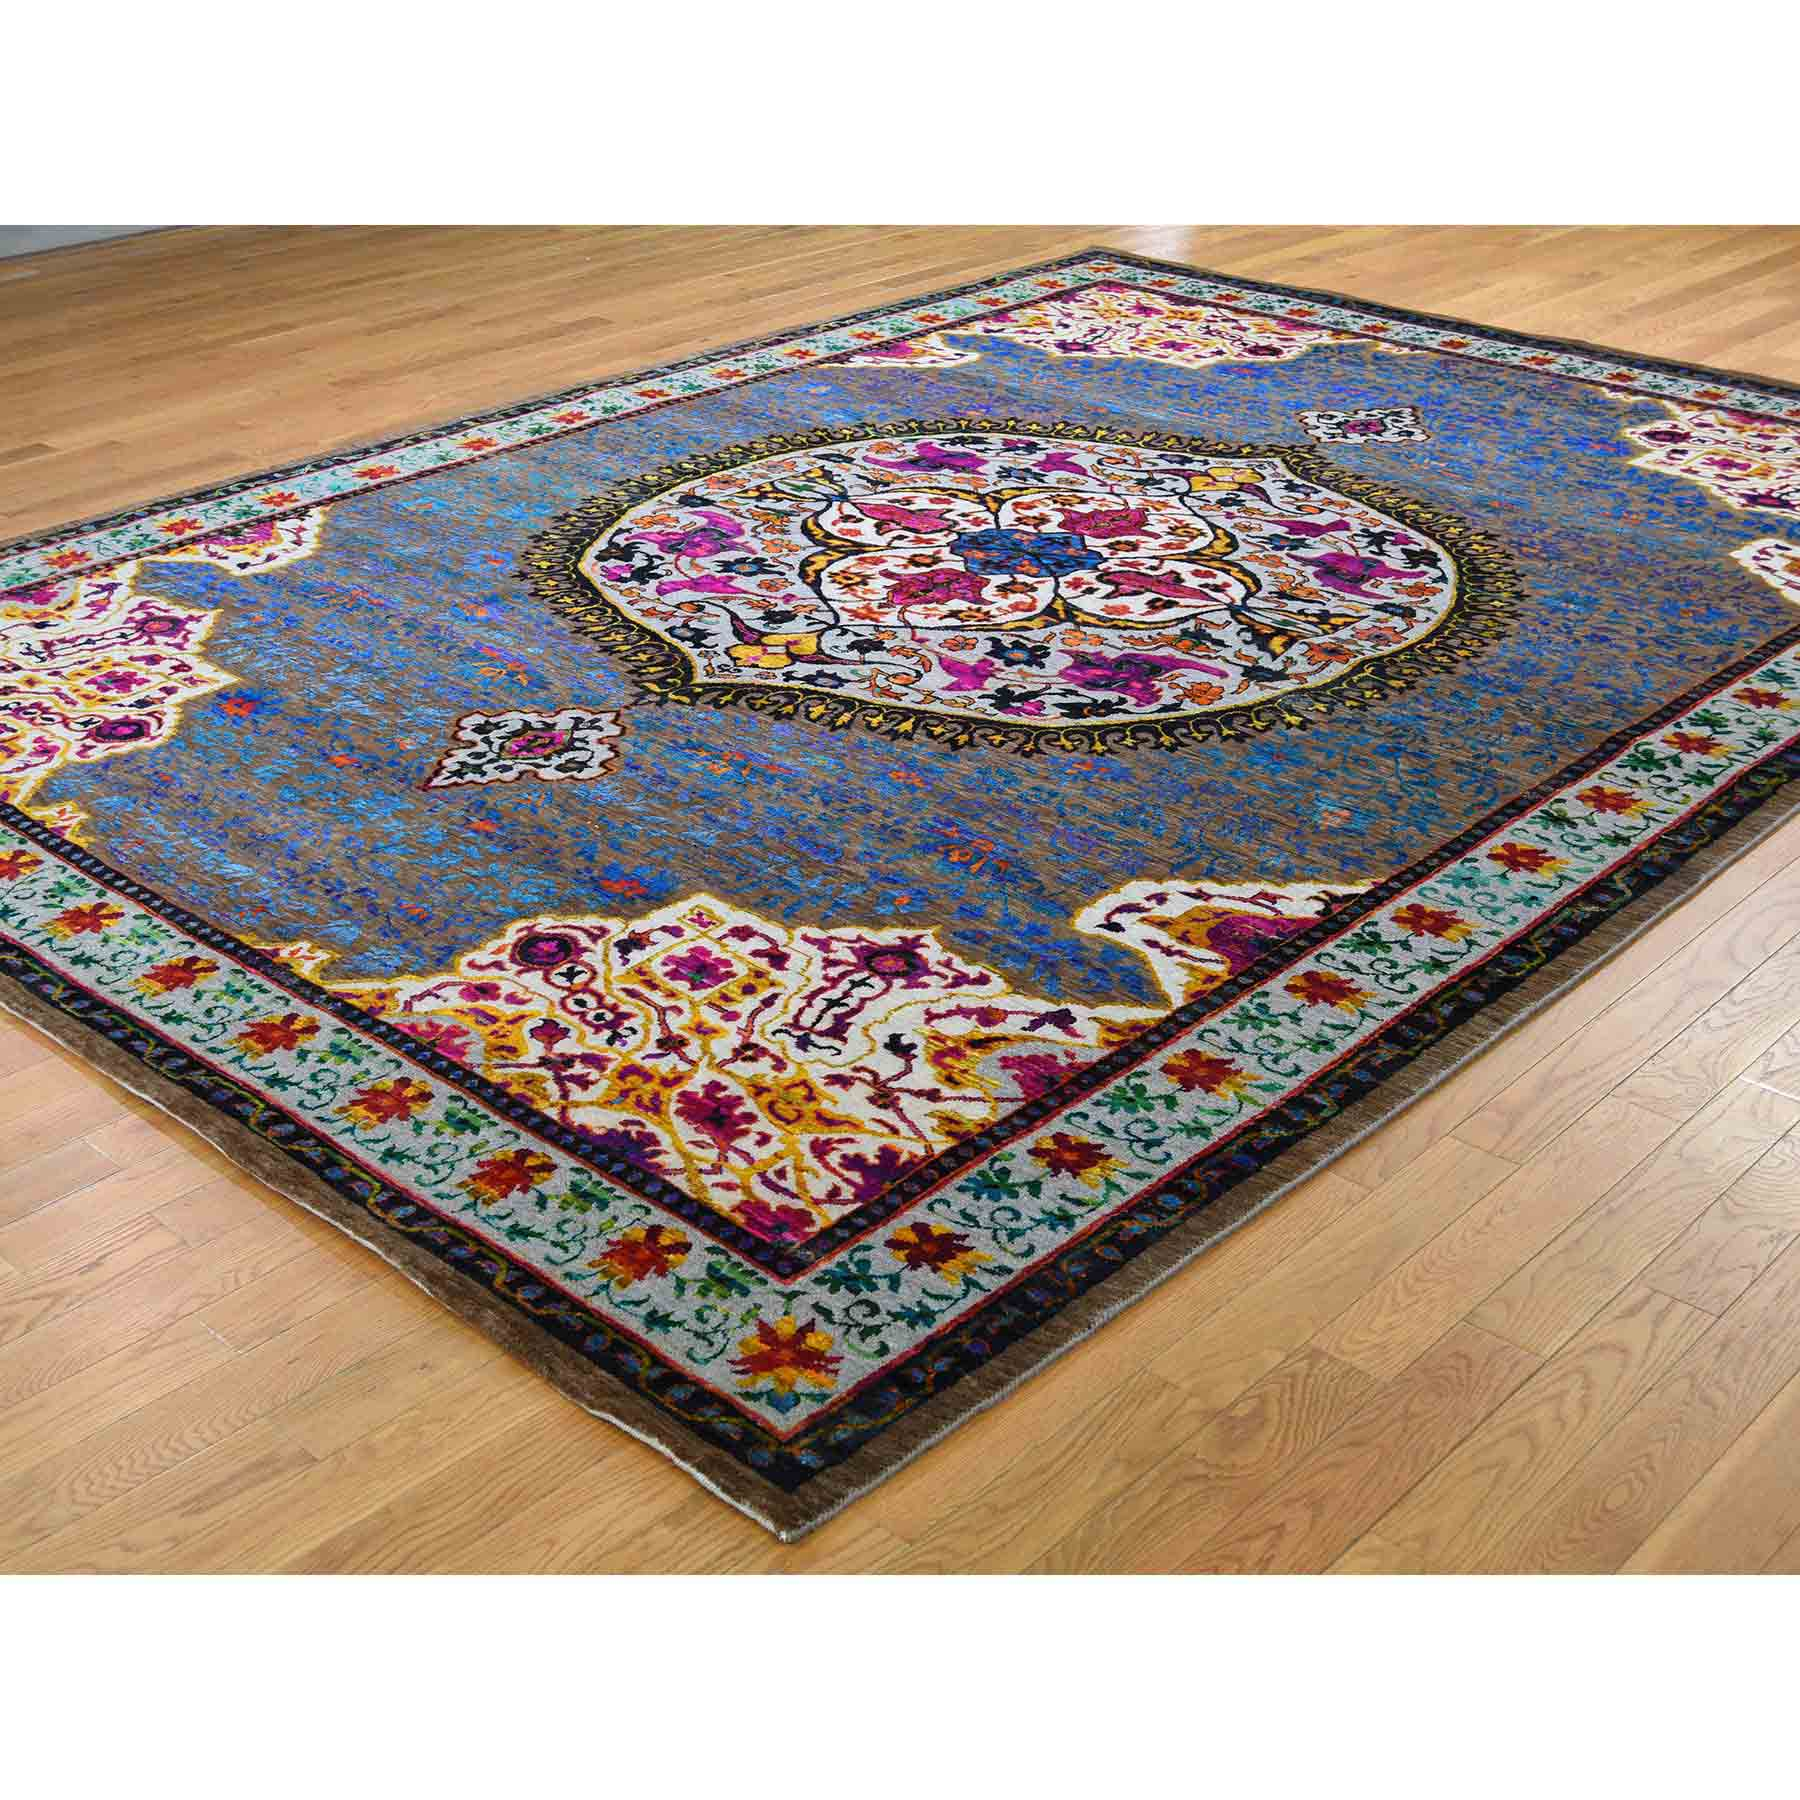 Oushak-And-Peshawar-Hand-Knotted-Rug-221070